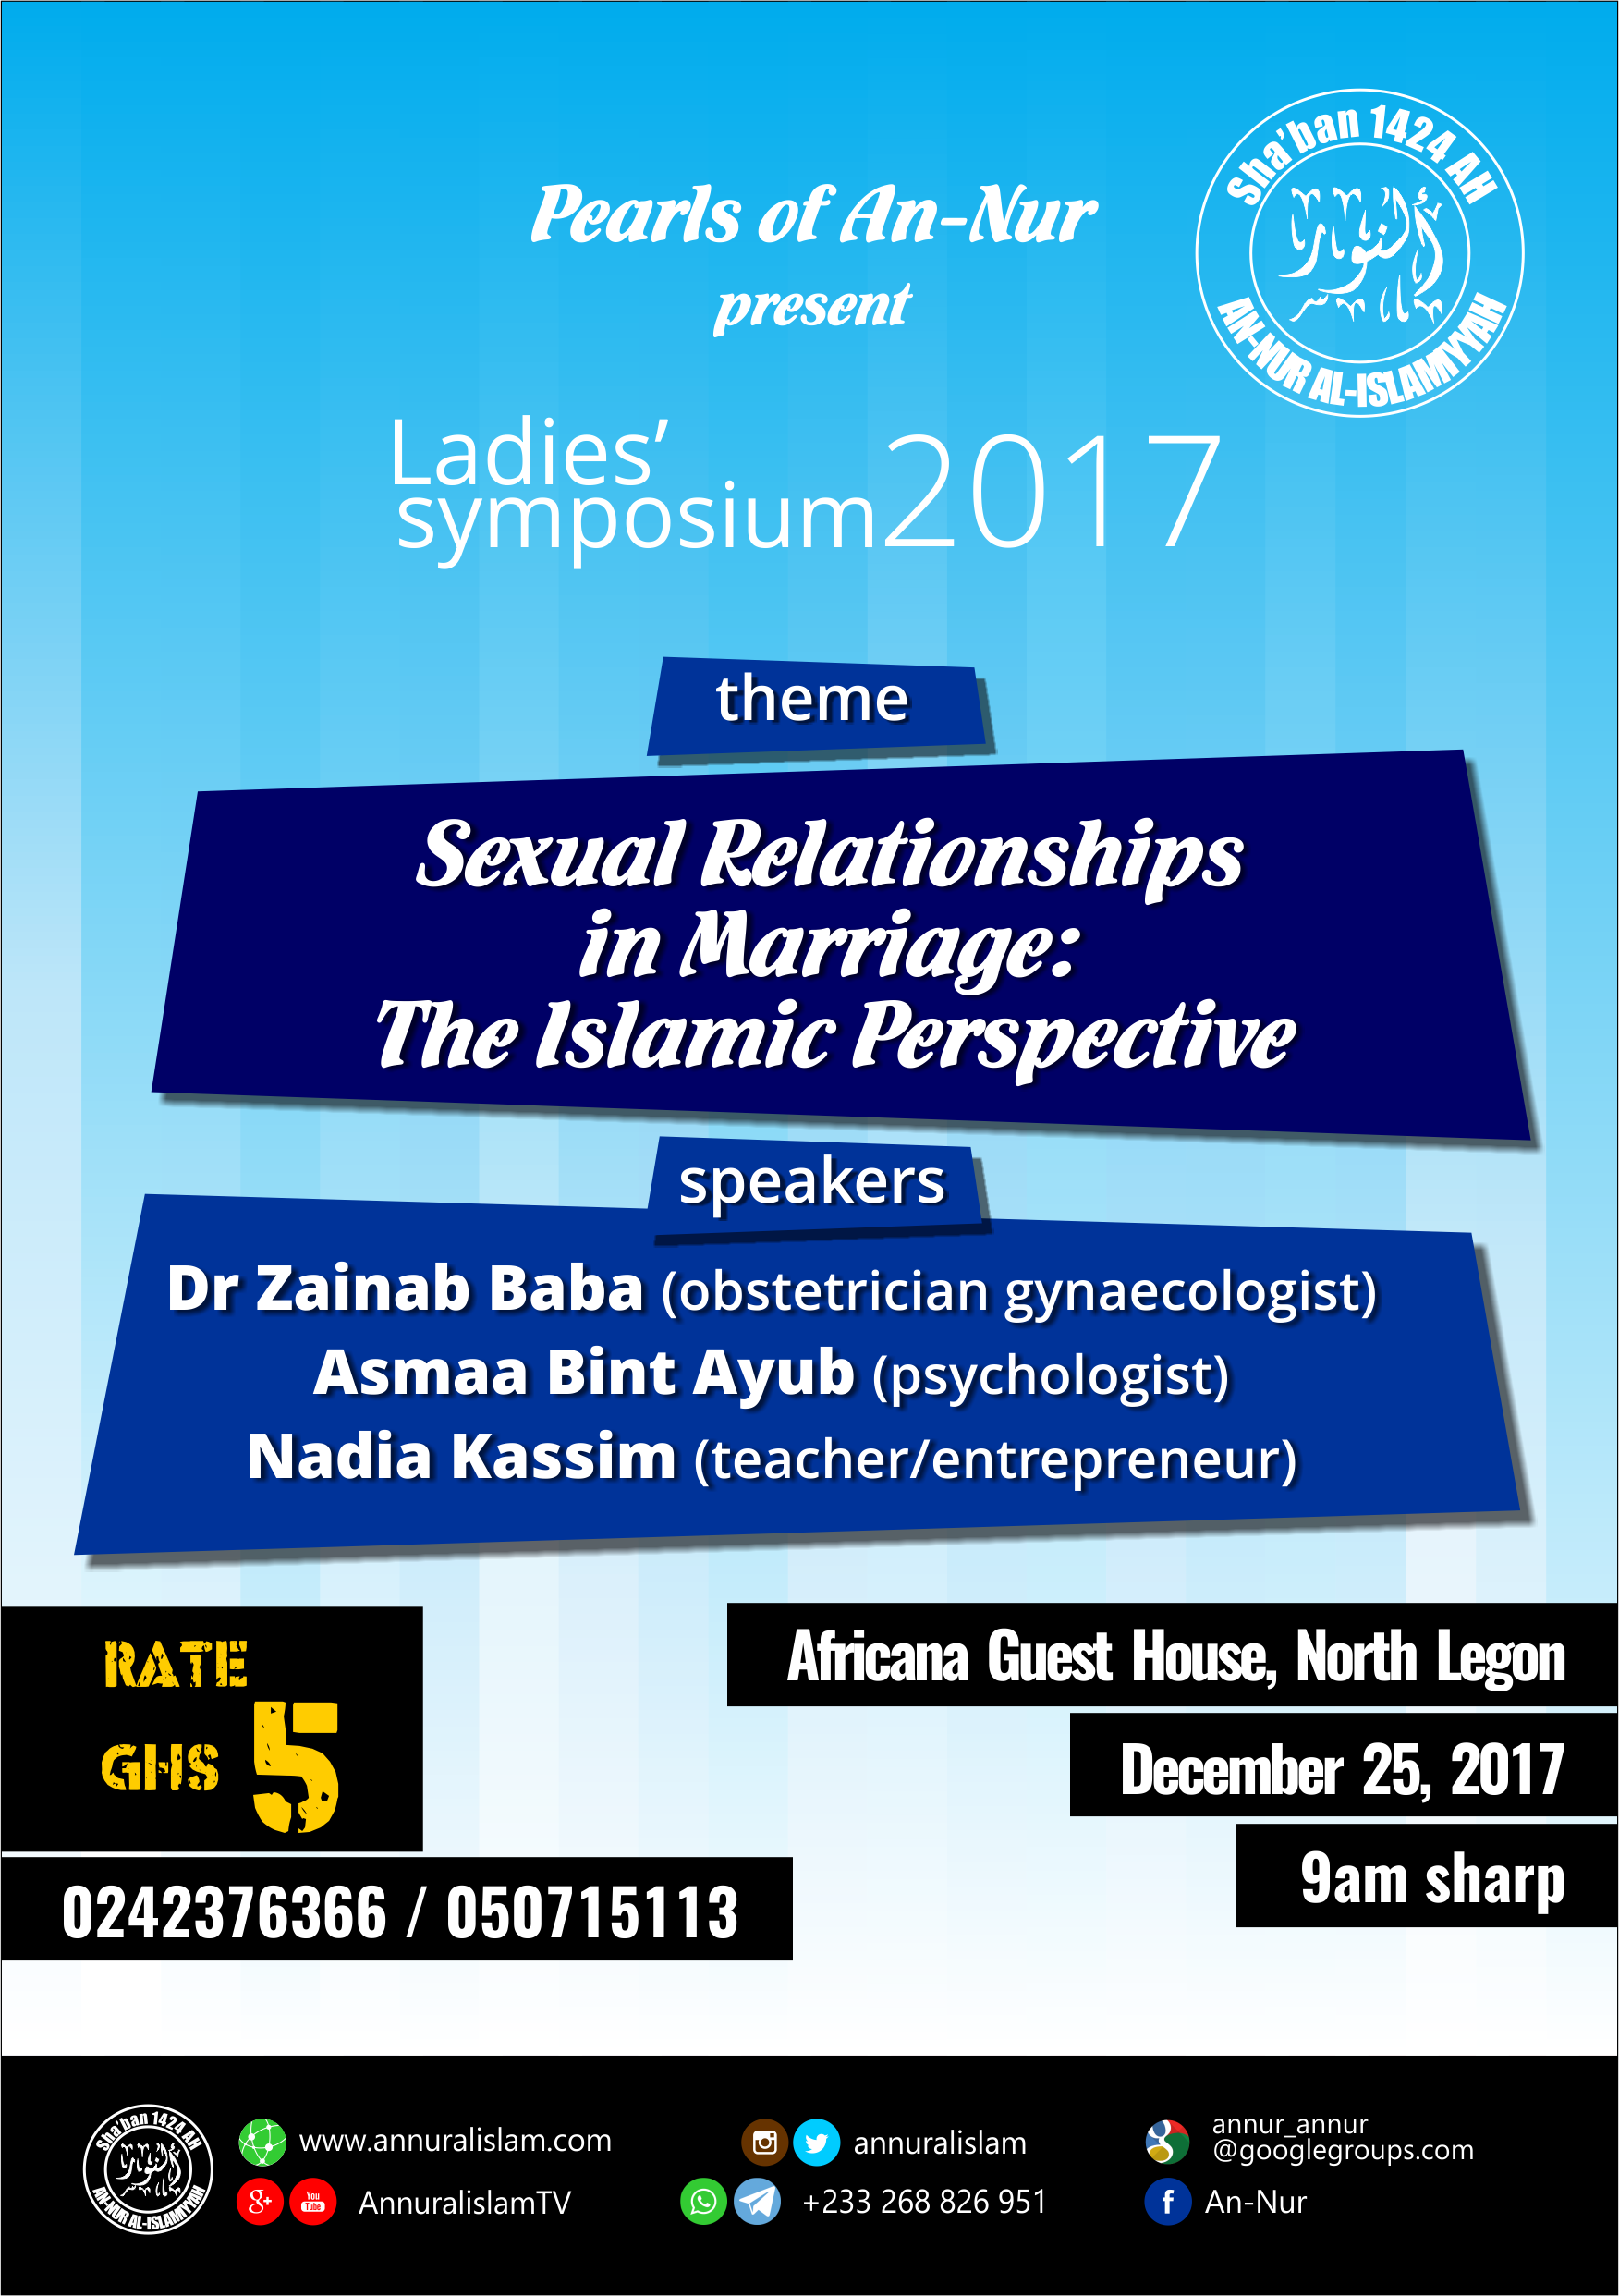 Sexual relations in marriage: The Islamic perspective